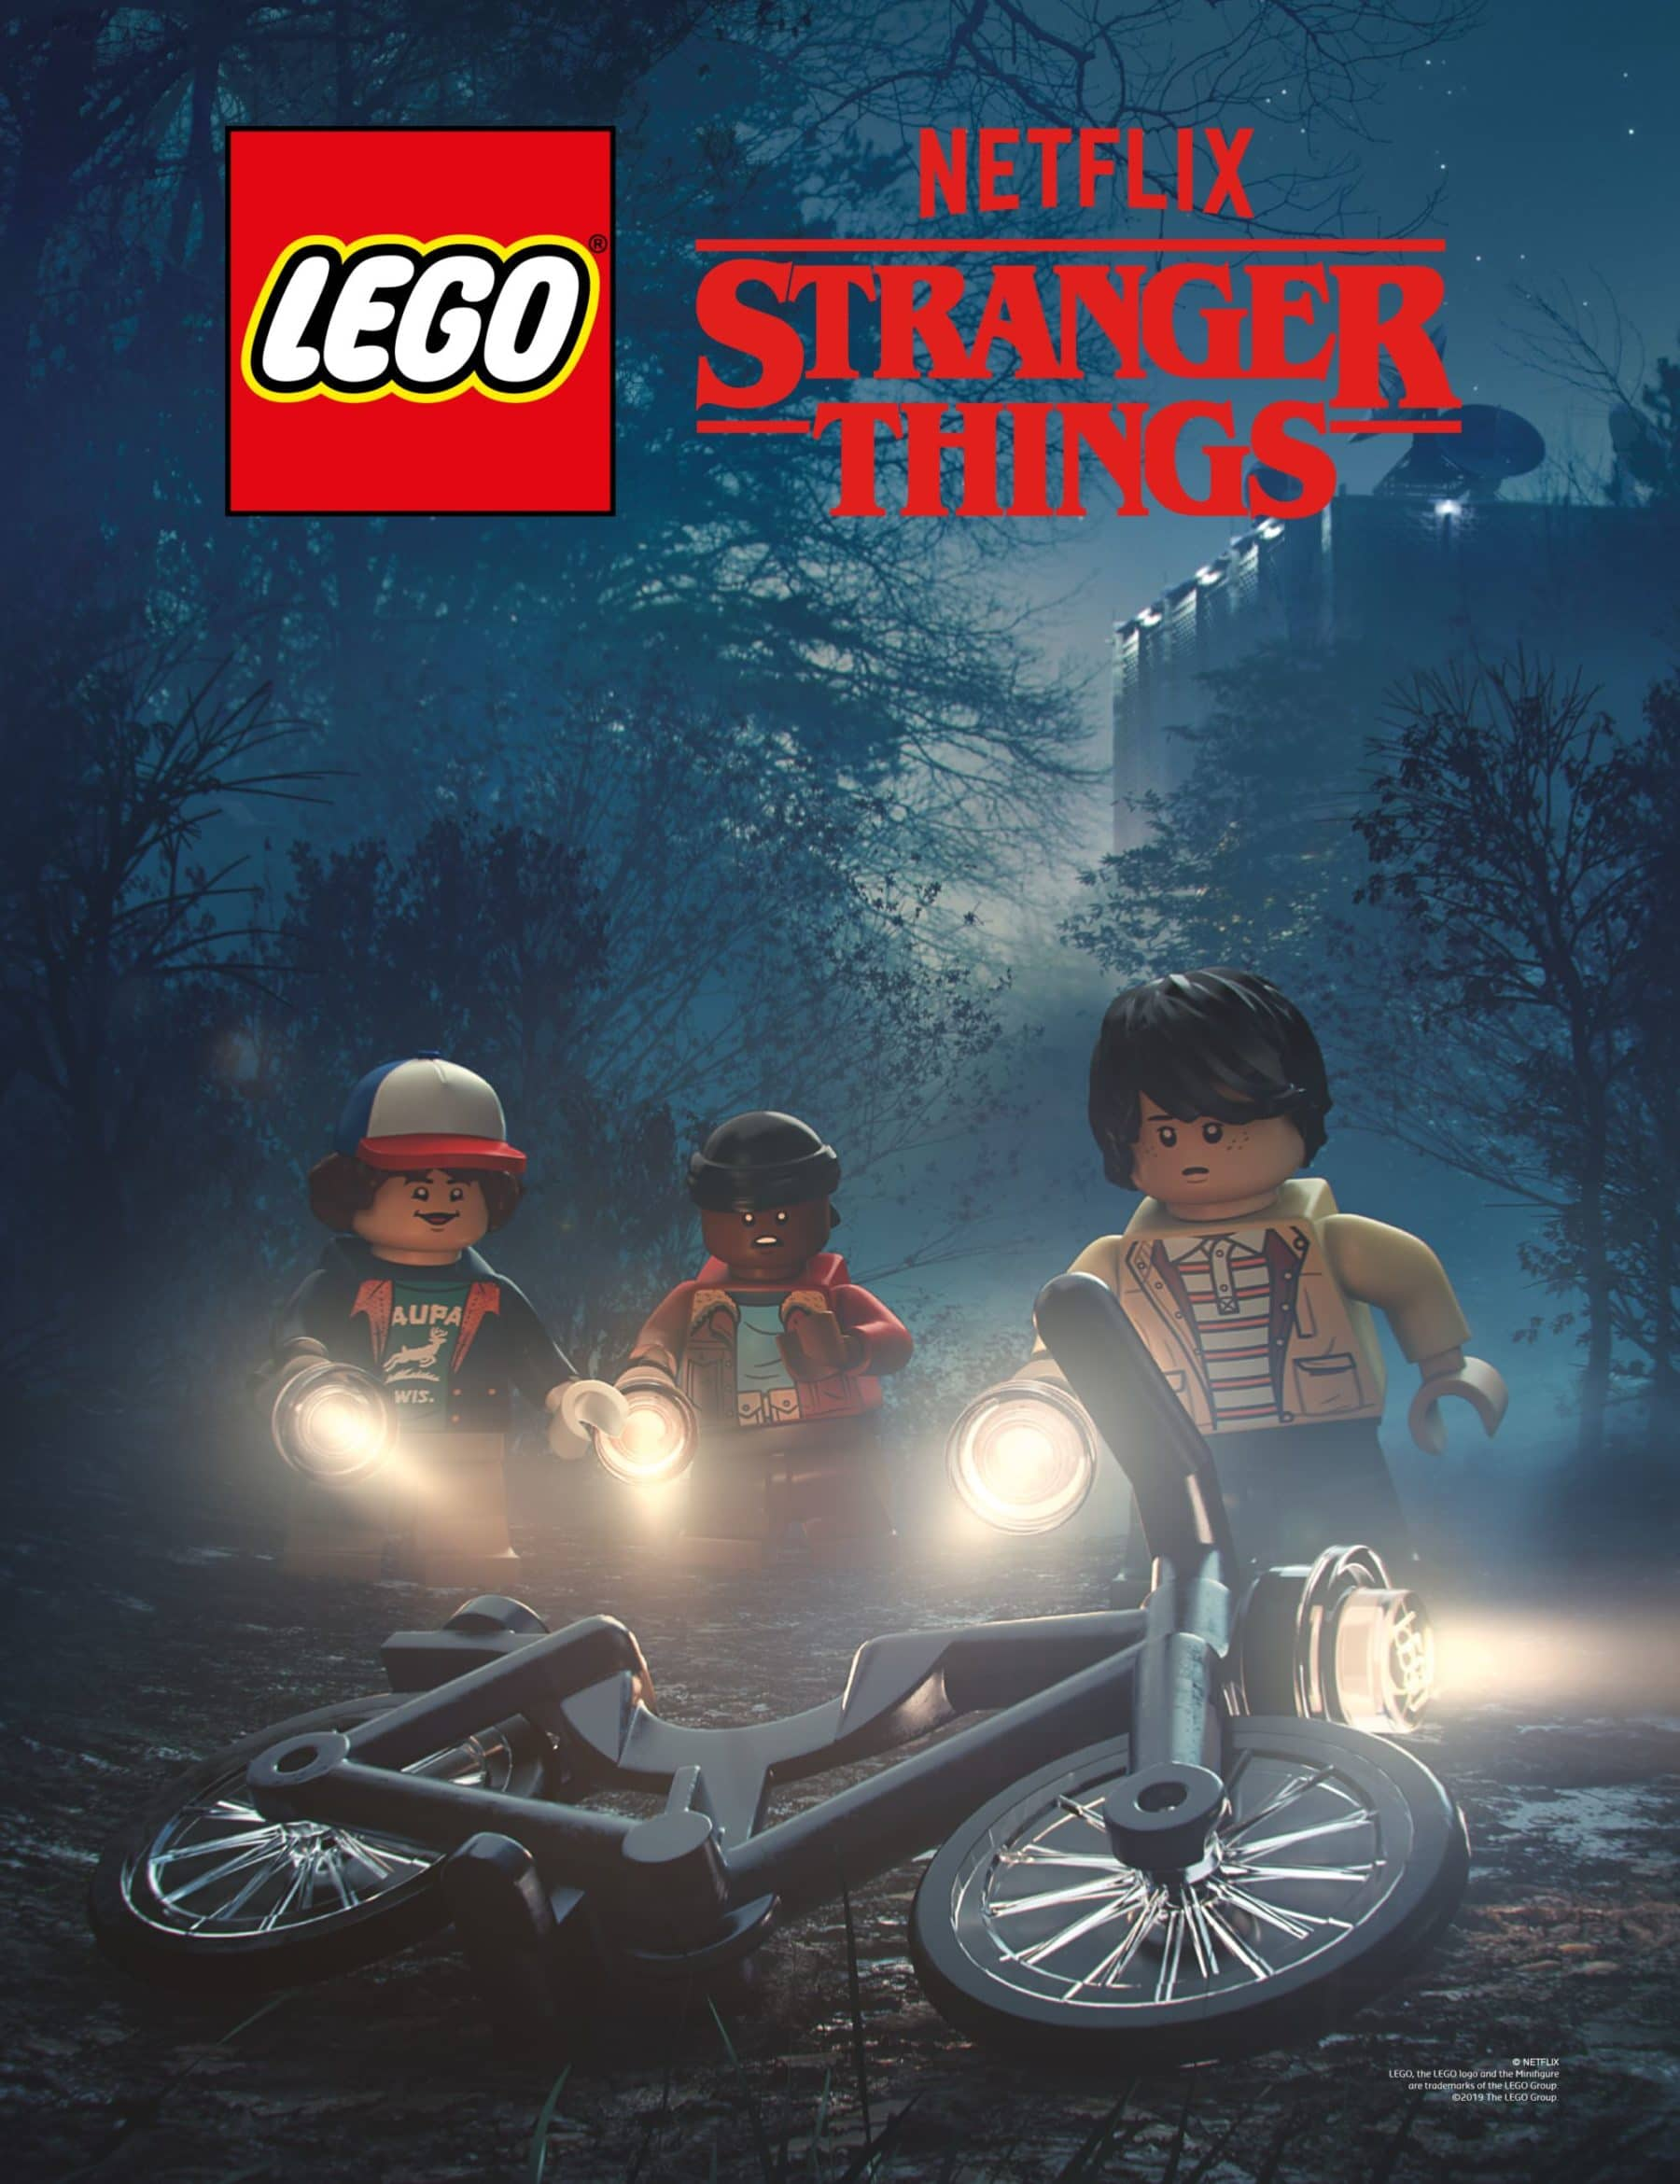 LEGO 5005956 Stranger Things Poster